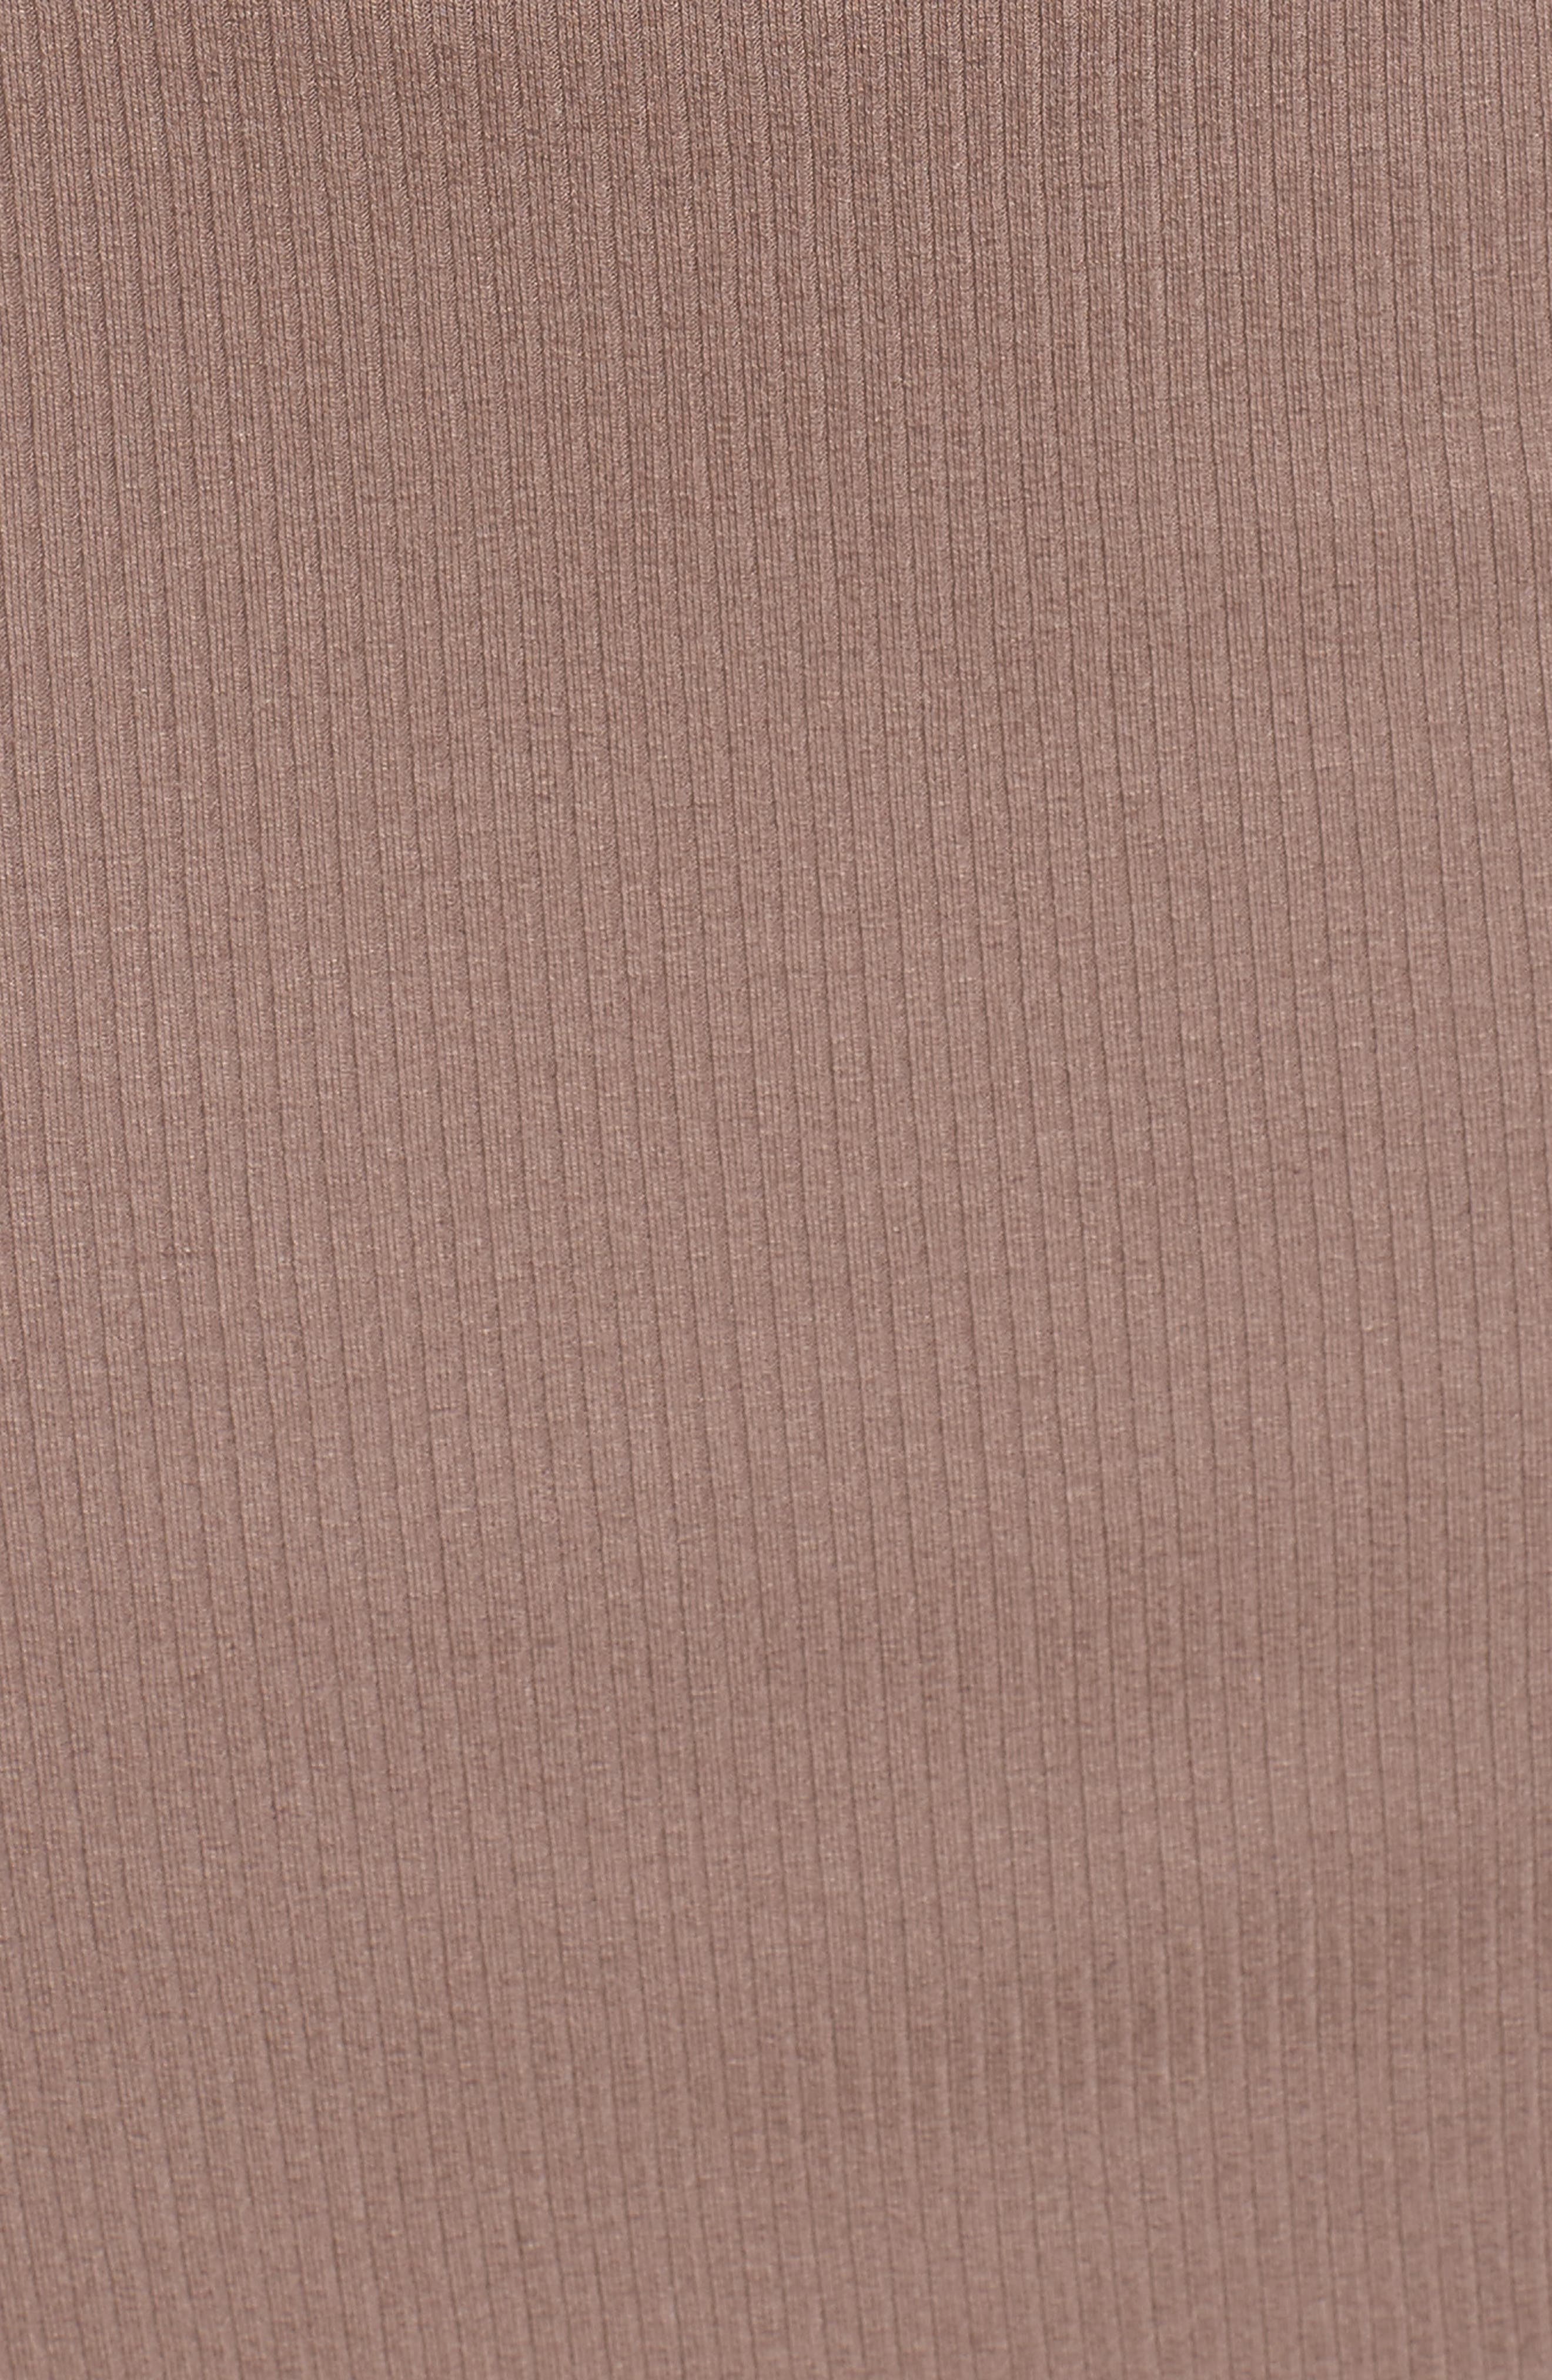 Silas Off the Shoulder Body-Con Dress,                             Alternate thumbnail 5, color,                             Warm Taupe